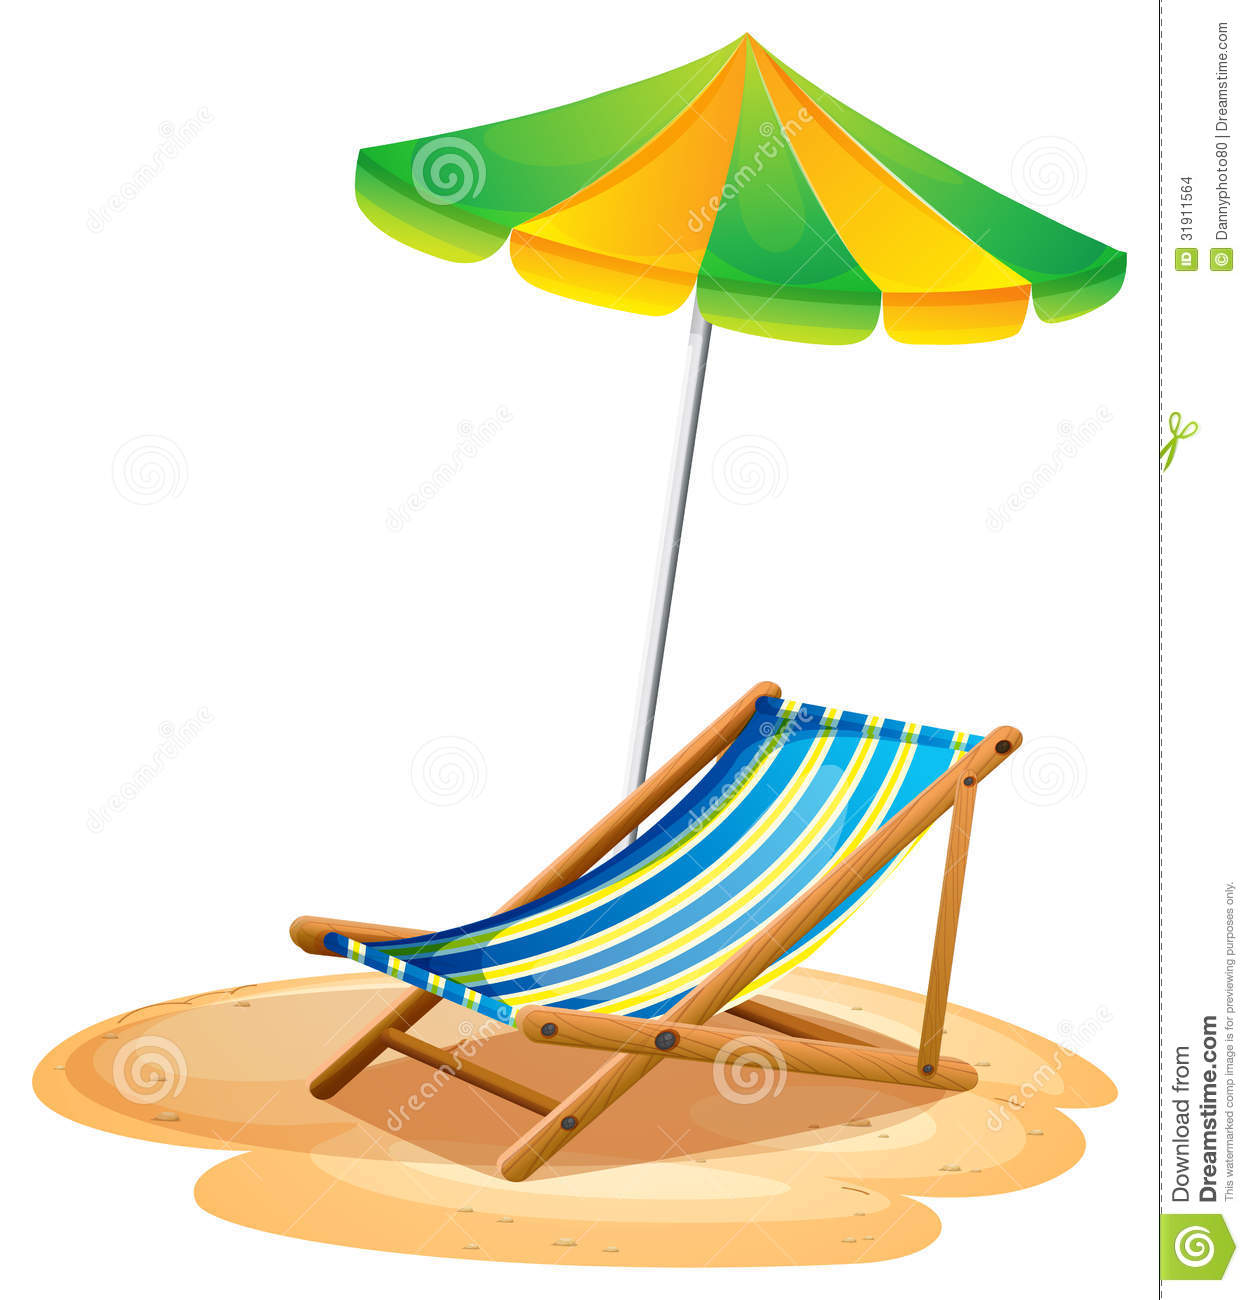 Beach chair and parasol vector illustration stock vector image - A Bench With A Summer Umbrella Stock Images Image 31911564